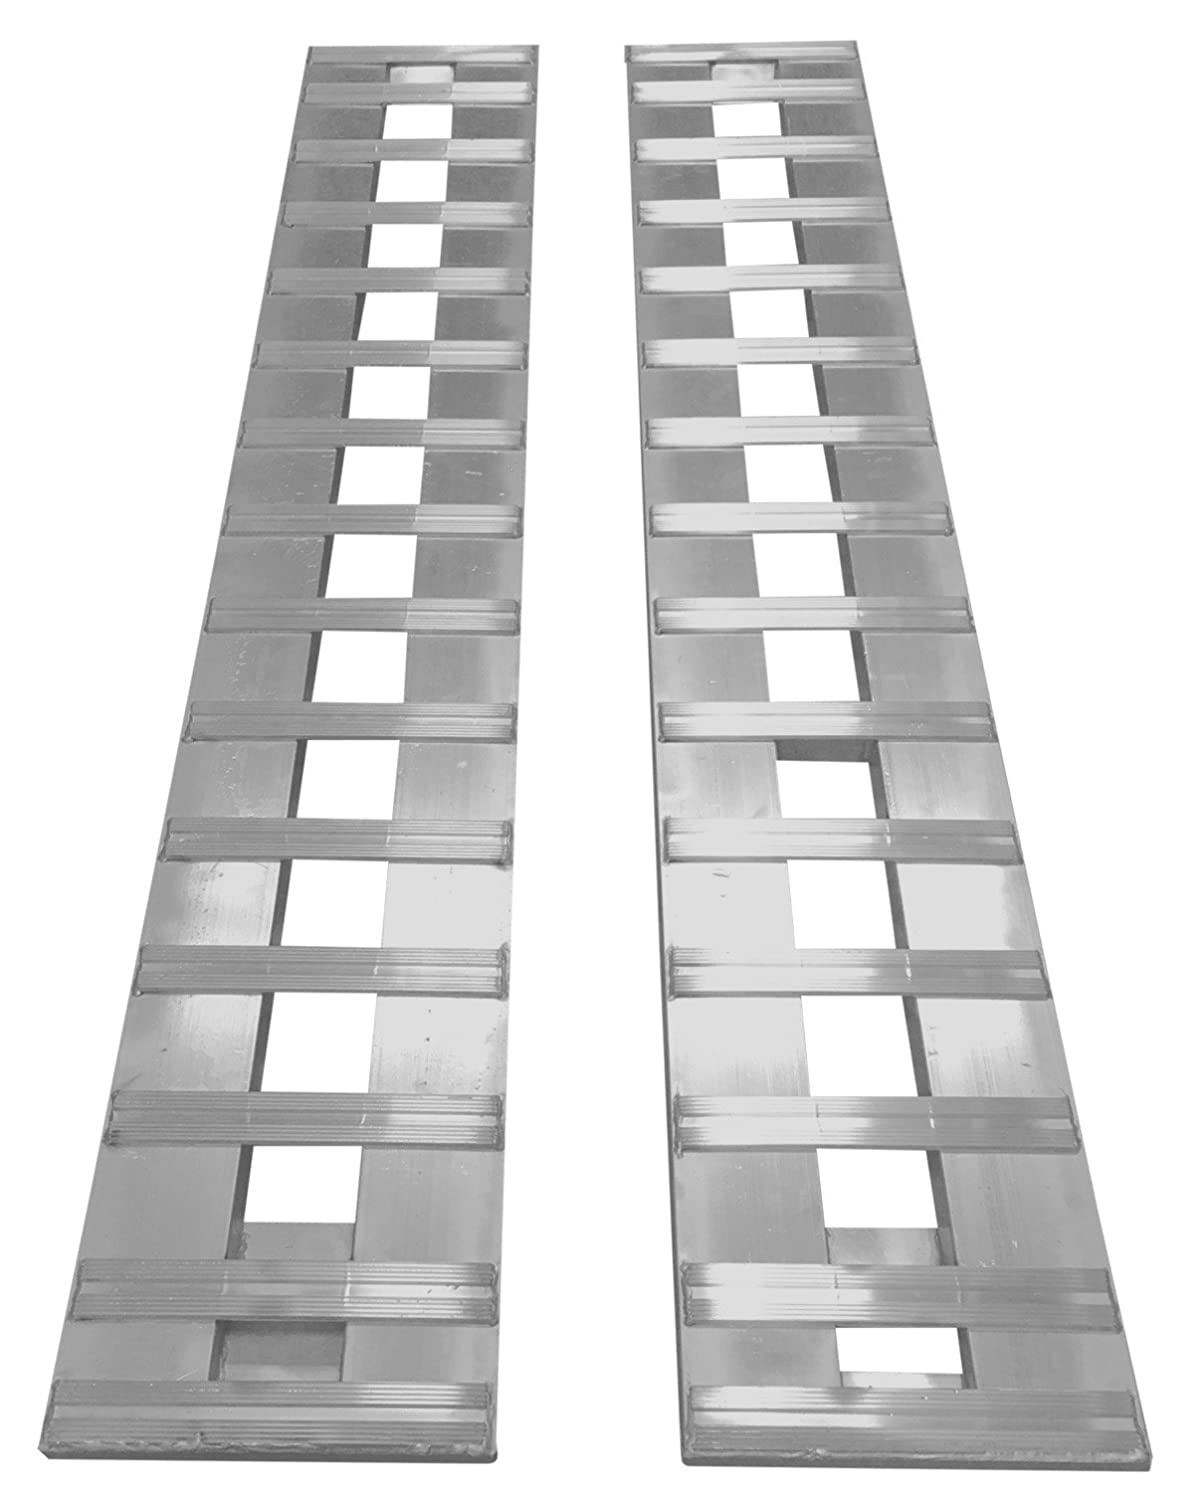 Aluminum Ramps Truck Trailer car ramps Heavy Duty 1- Set, Two ramps = 10,000lb Capacity 15' Wide 96' (8') Long 000lb Capacity 15 Wide 96 (8' ) Long GENY GH-R96